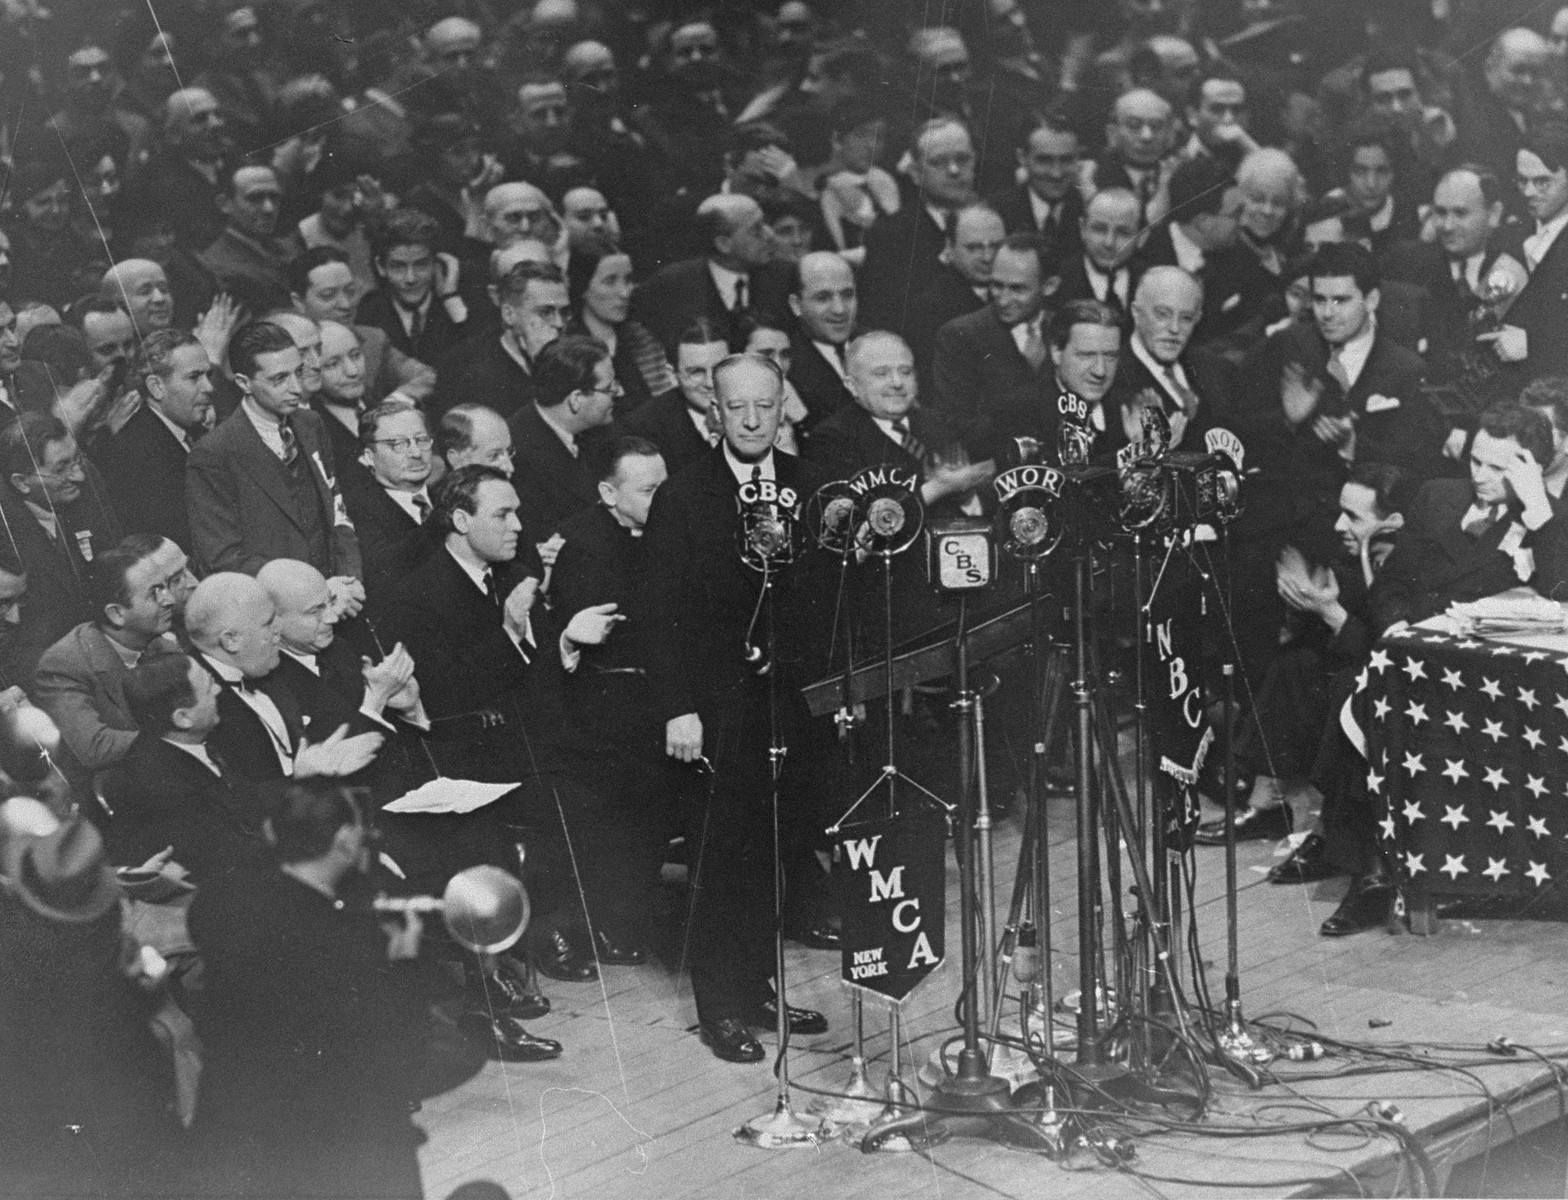 Former Governor Alfred E. Smith addresses the crowd at a mass demonstration held in Madison Square Garden to protest against the Nazi persecution of German Jews.